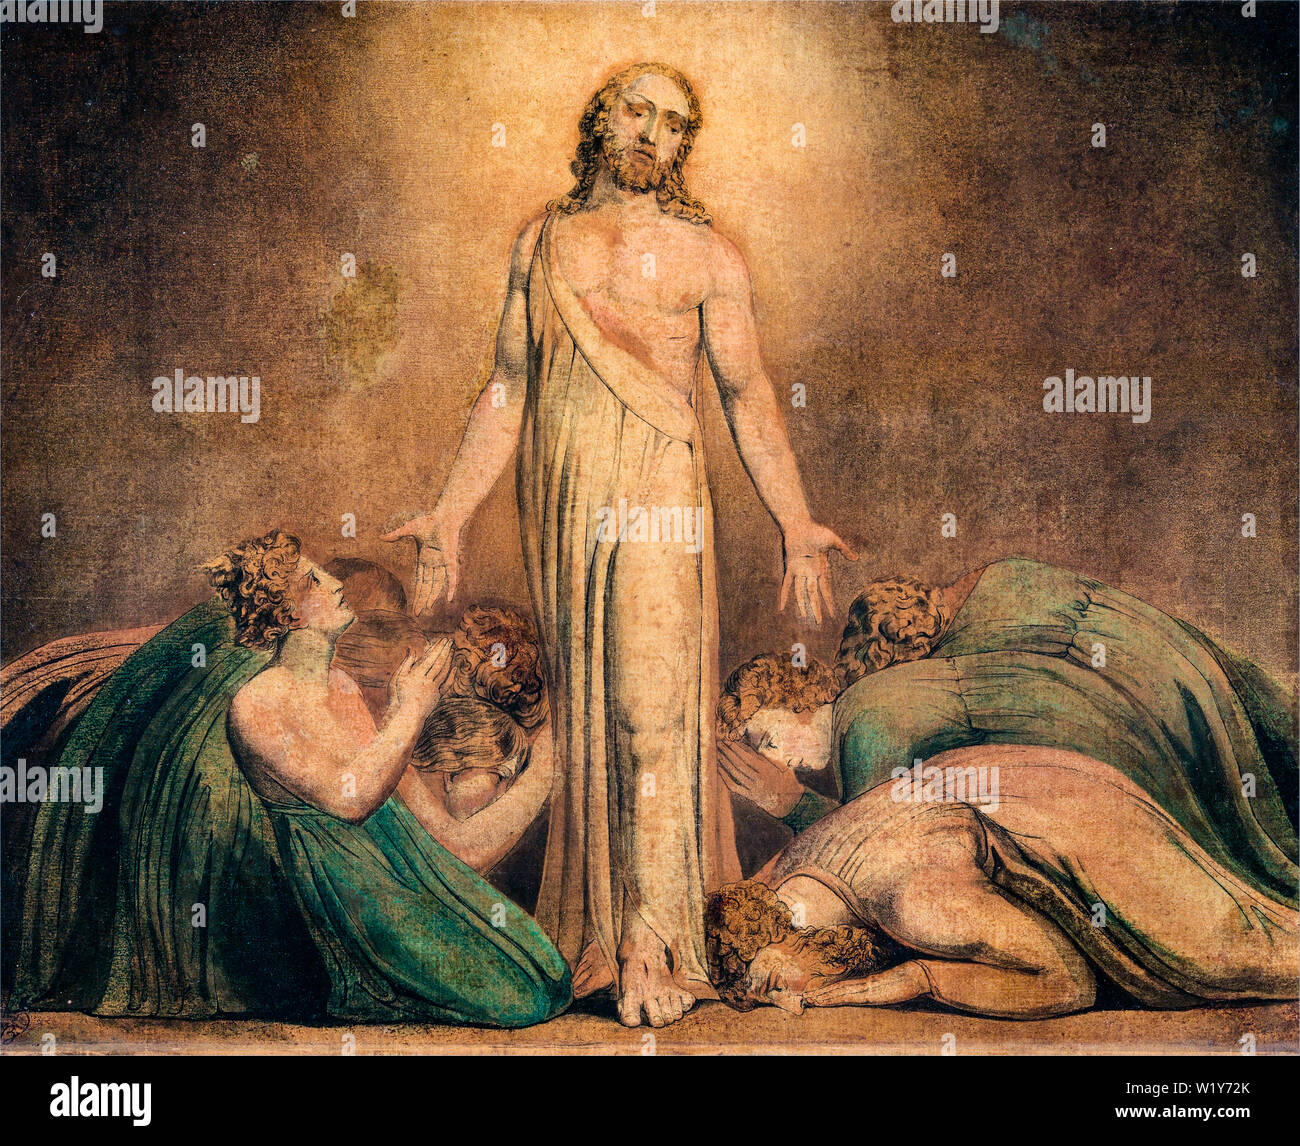 William Blake, Christ Appearing to the Apostles after the Resurrection, painting, 1795-1805 - Stock Image